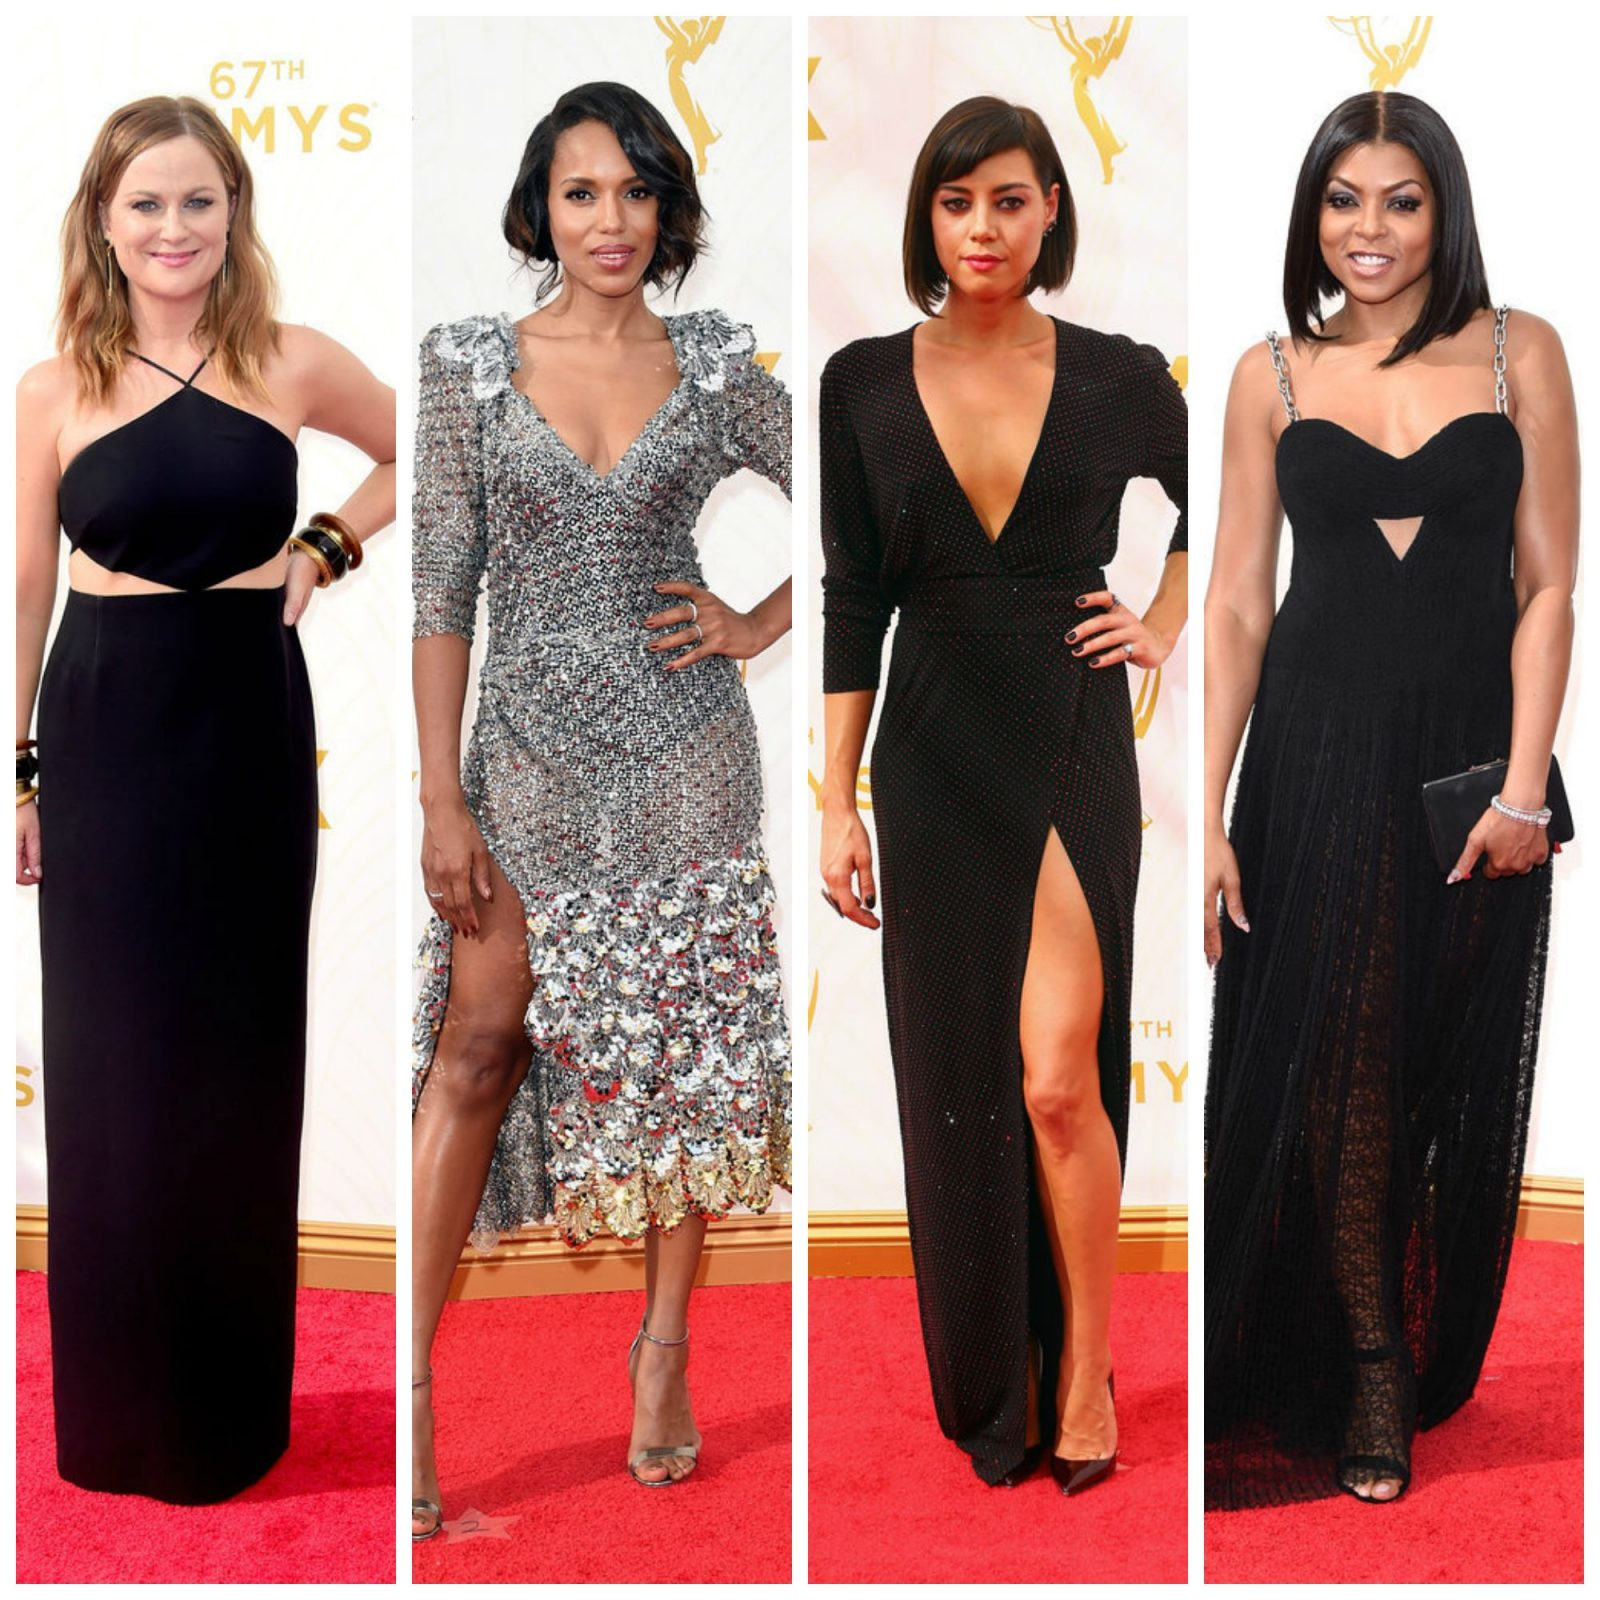 The 2015 Emmy's Red Carpet aka The Most Ill-Fitting Disappointing Celebrity Homecoming Ever!